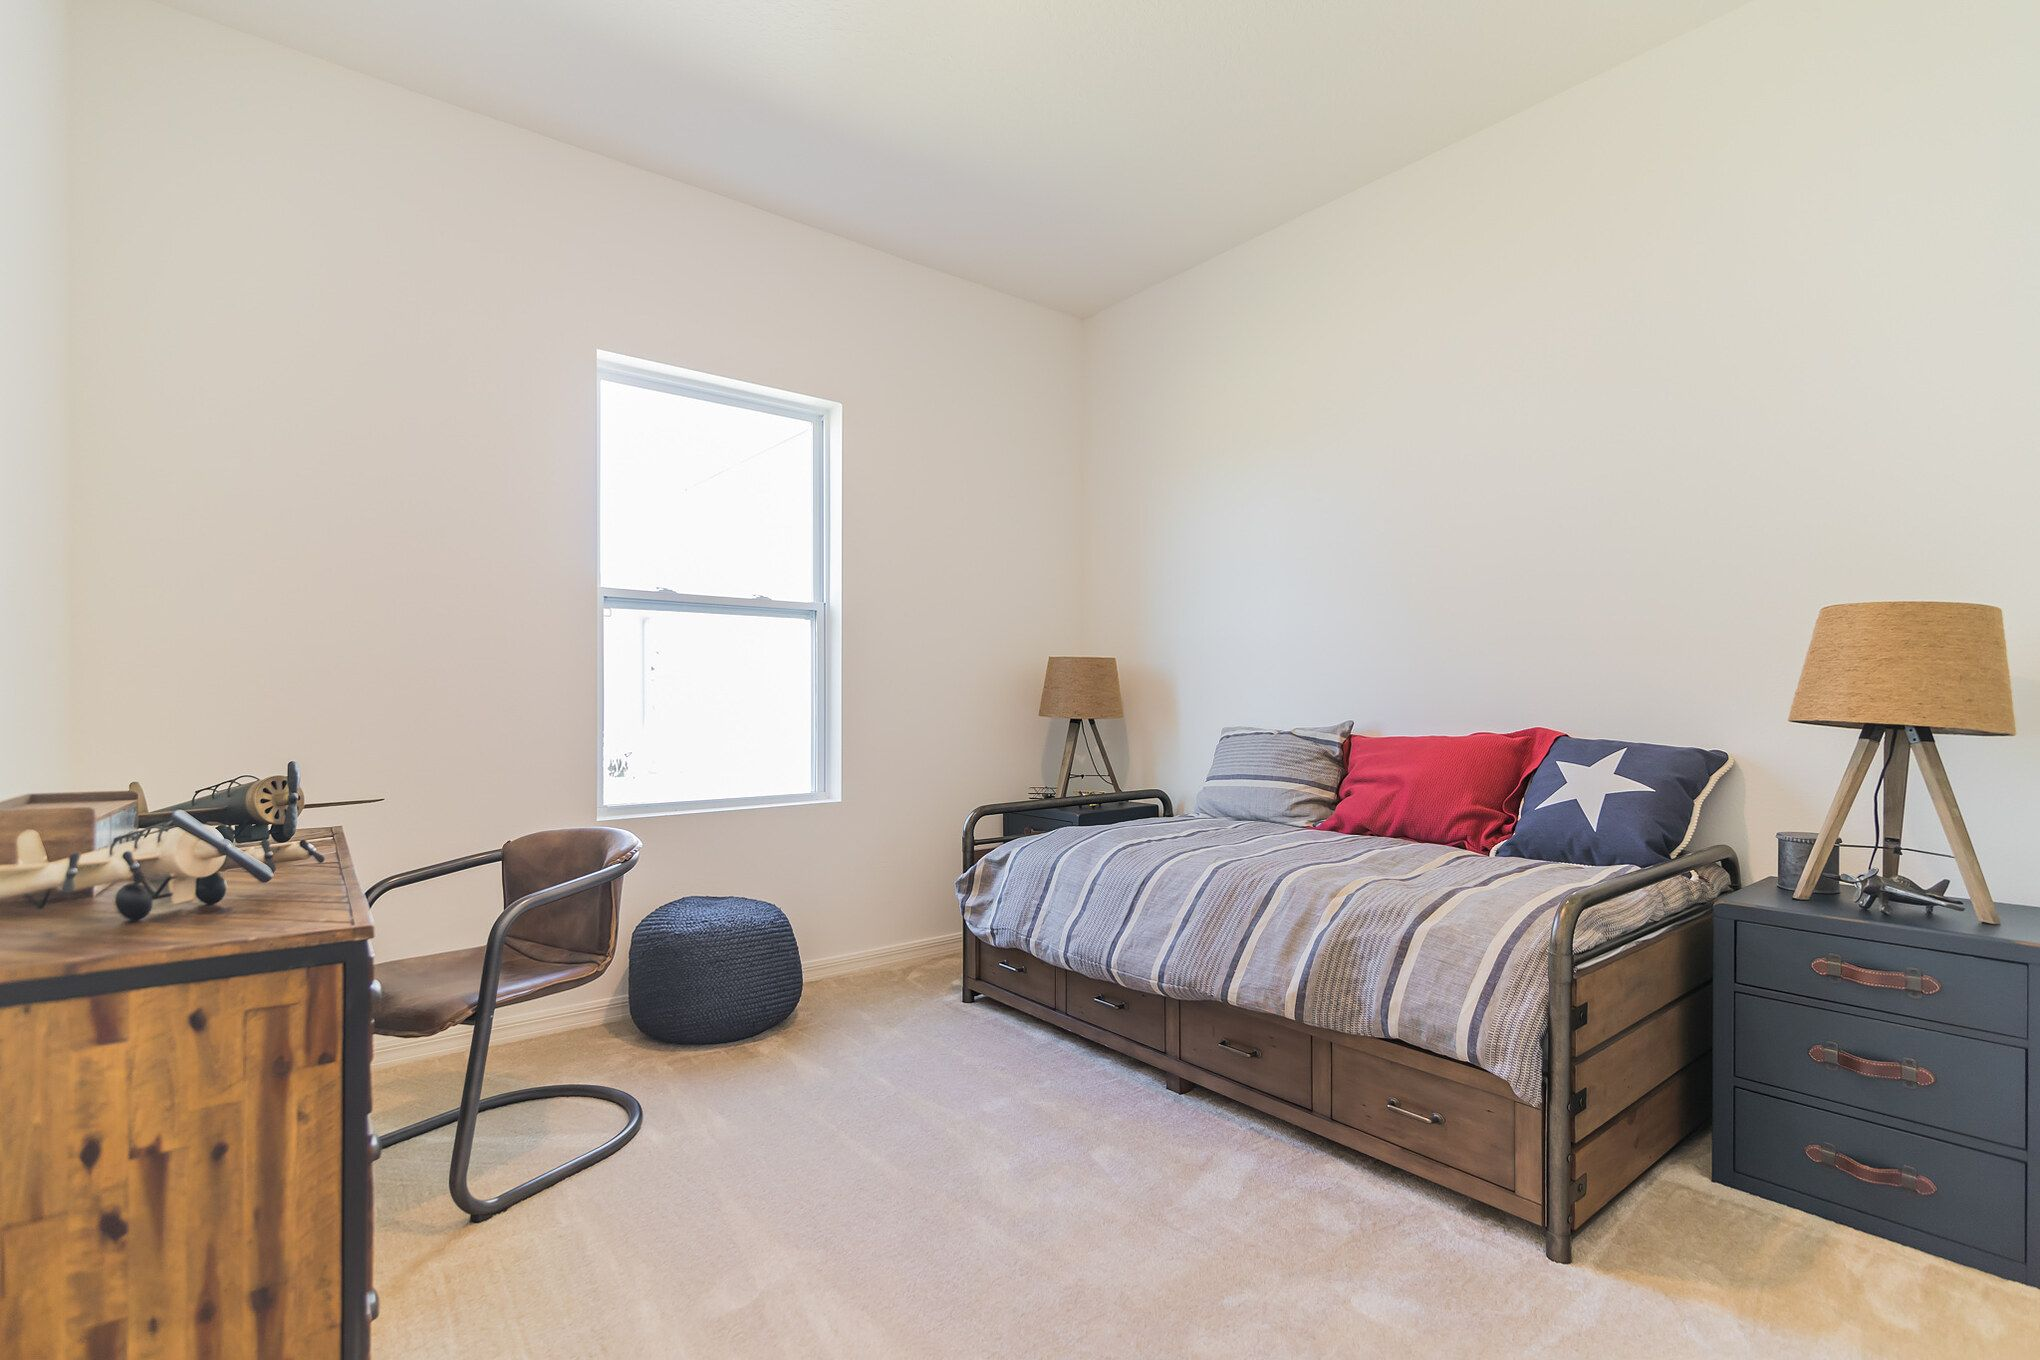 Bedroom featured in the Badland By Ashton Woods in Orlando, FL